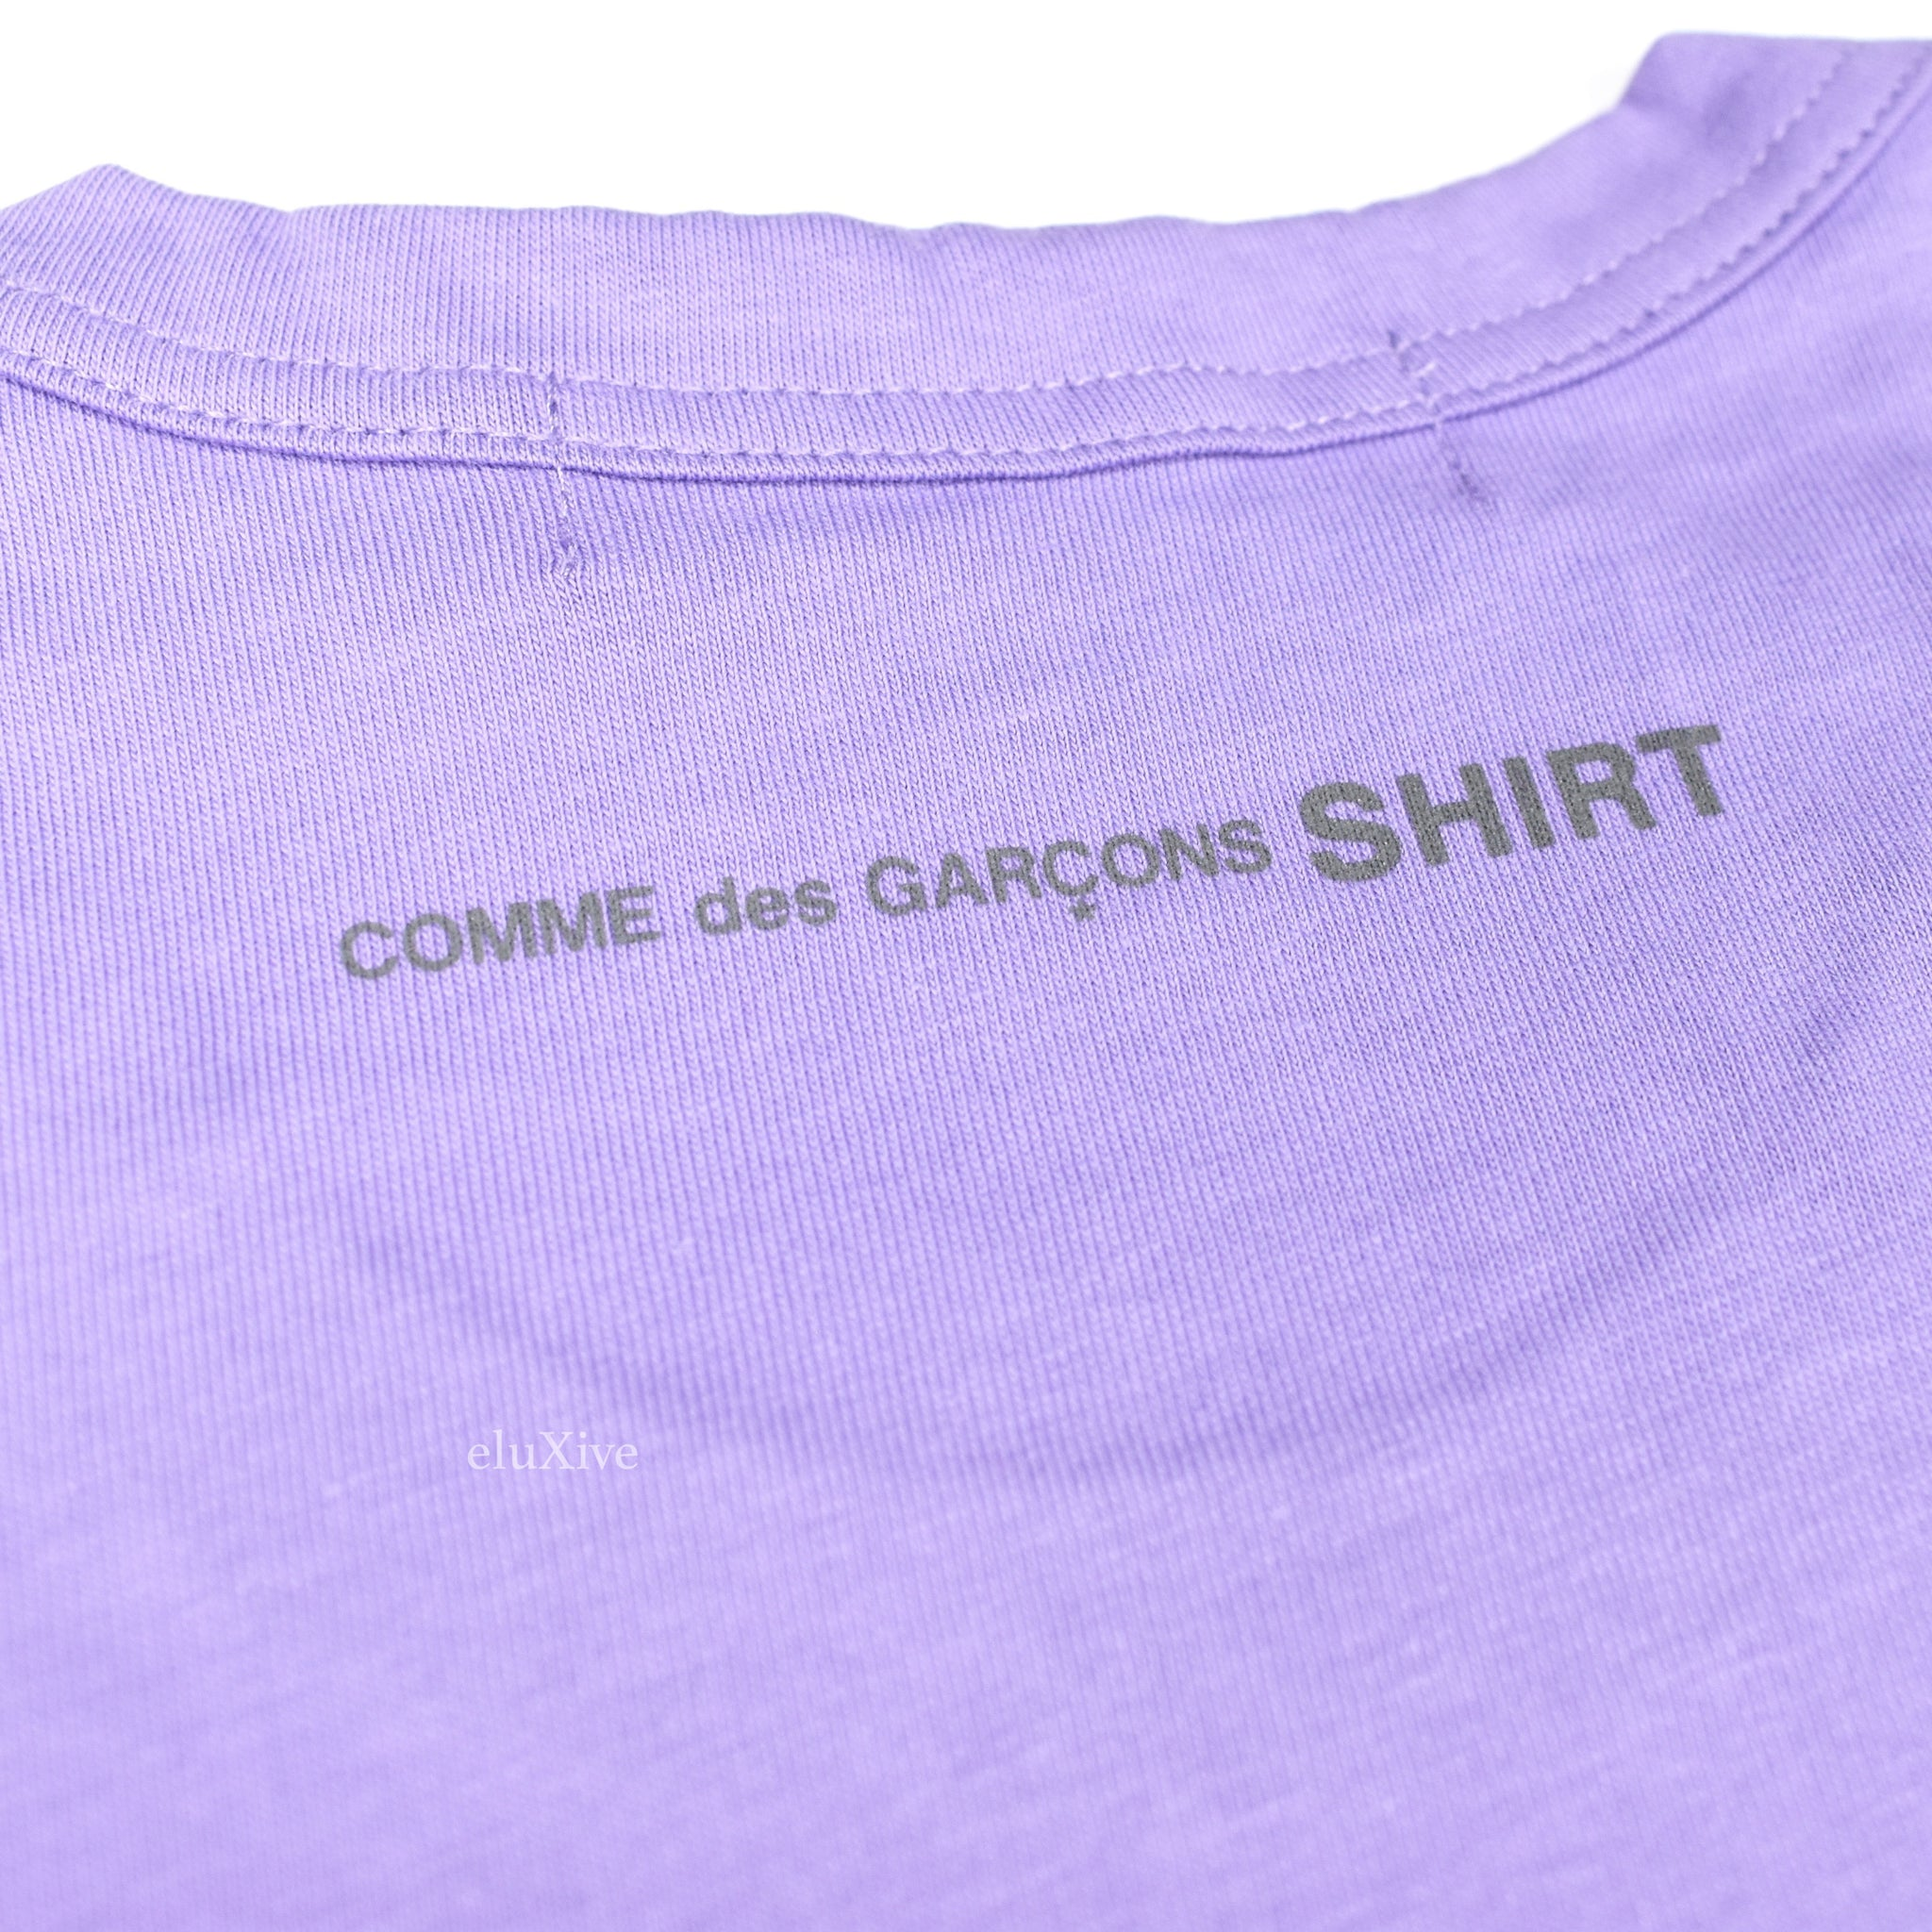 Comme des Garcons - Light Purple T-Shirt